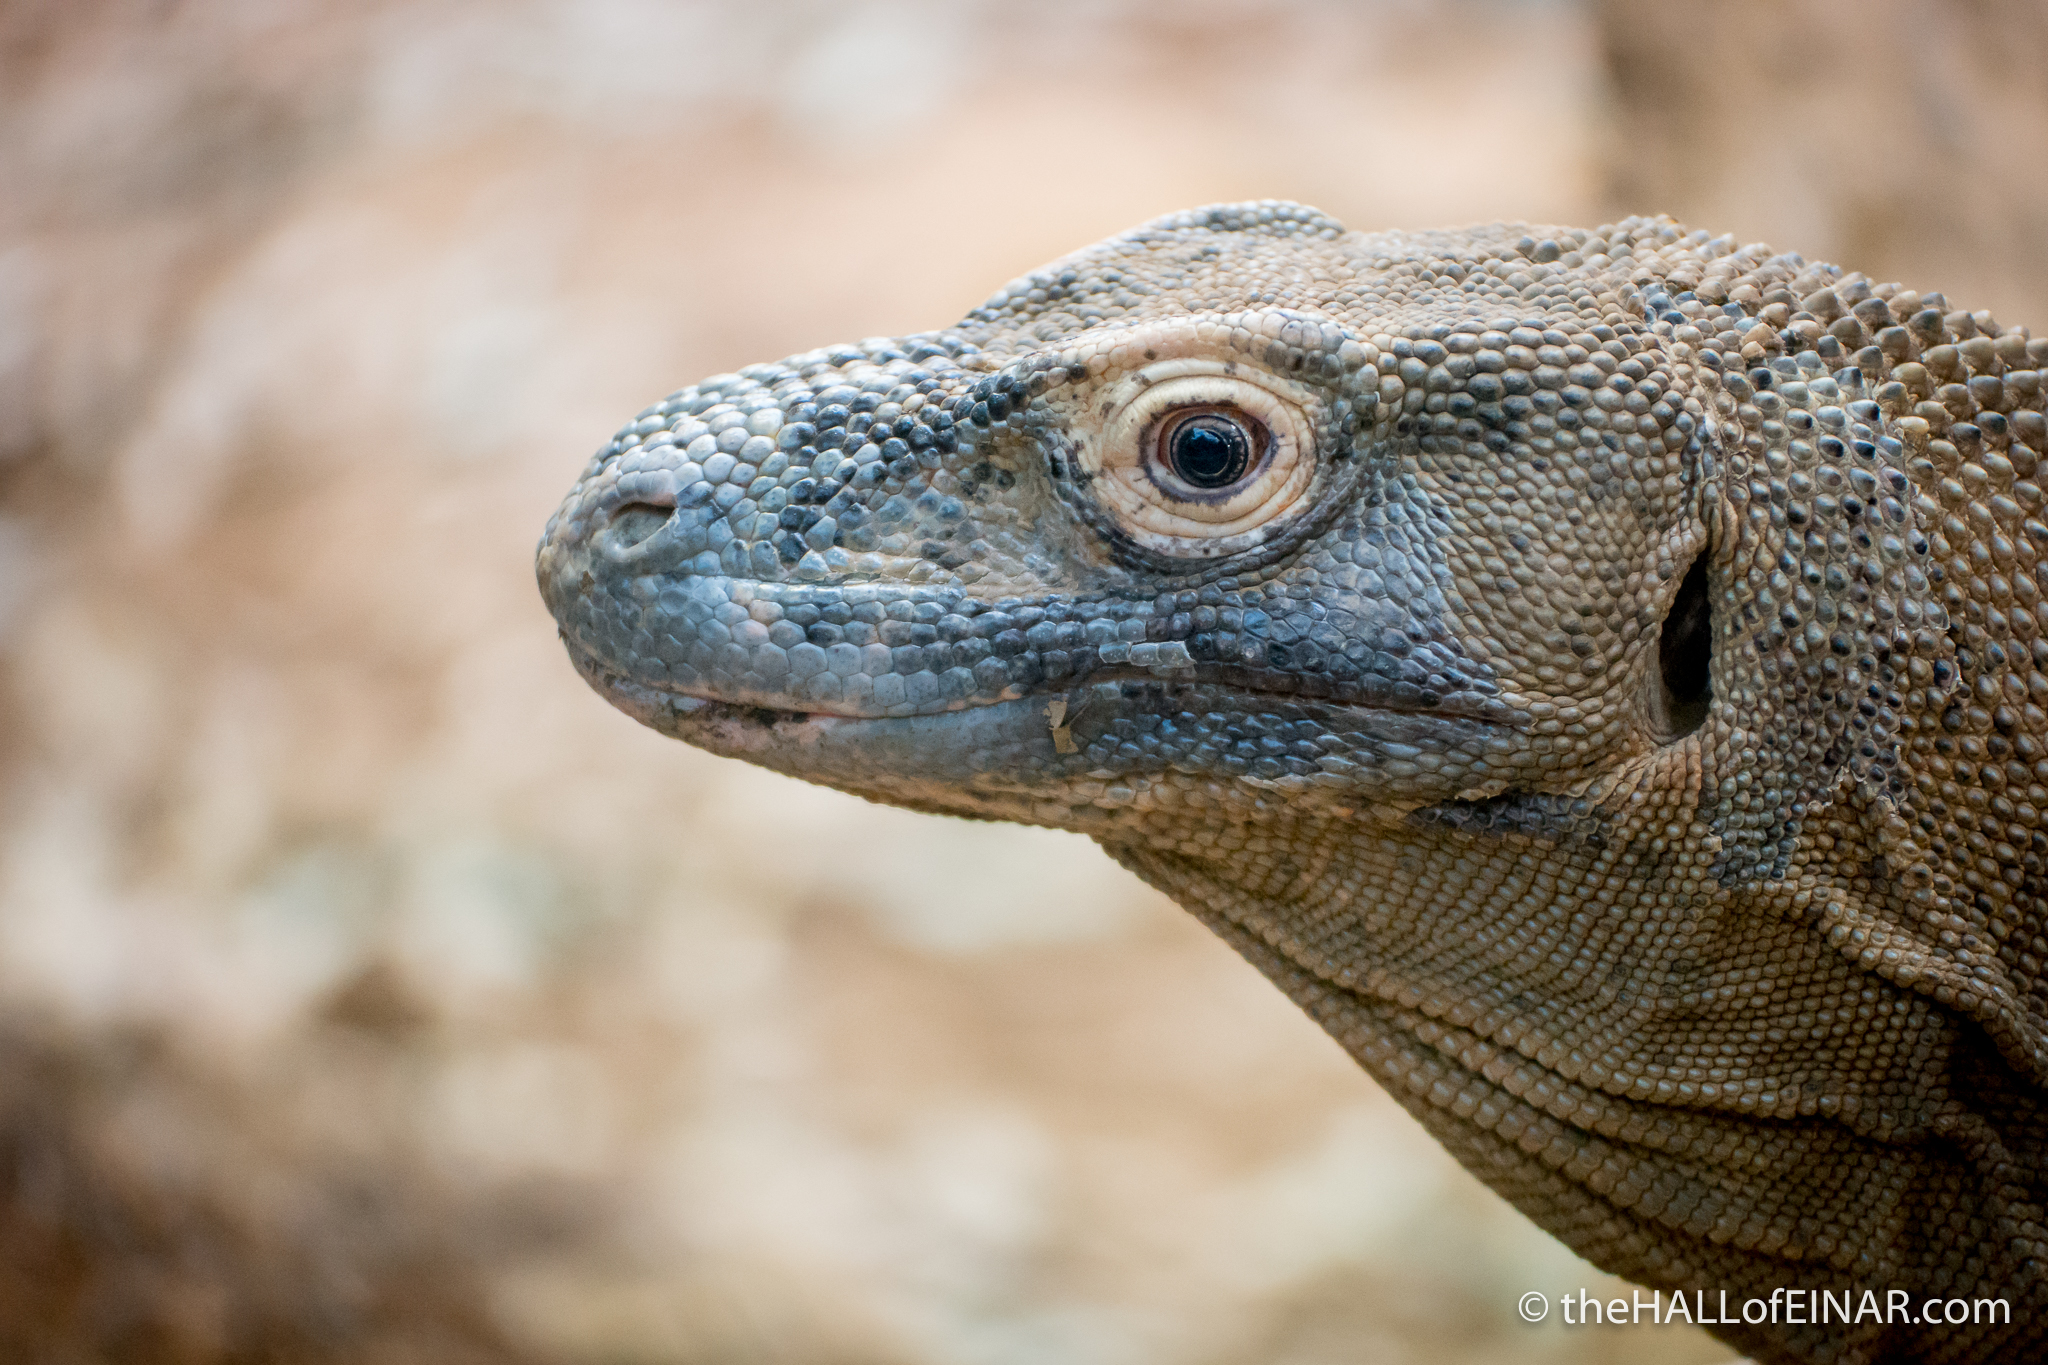 Komodo Dragon - Varanus komodoensis - The Hall of Einar - photograph (c) David Bailey (not the)